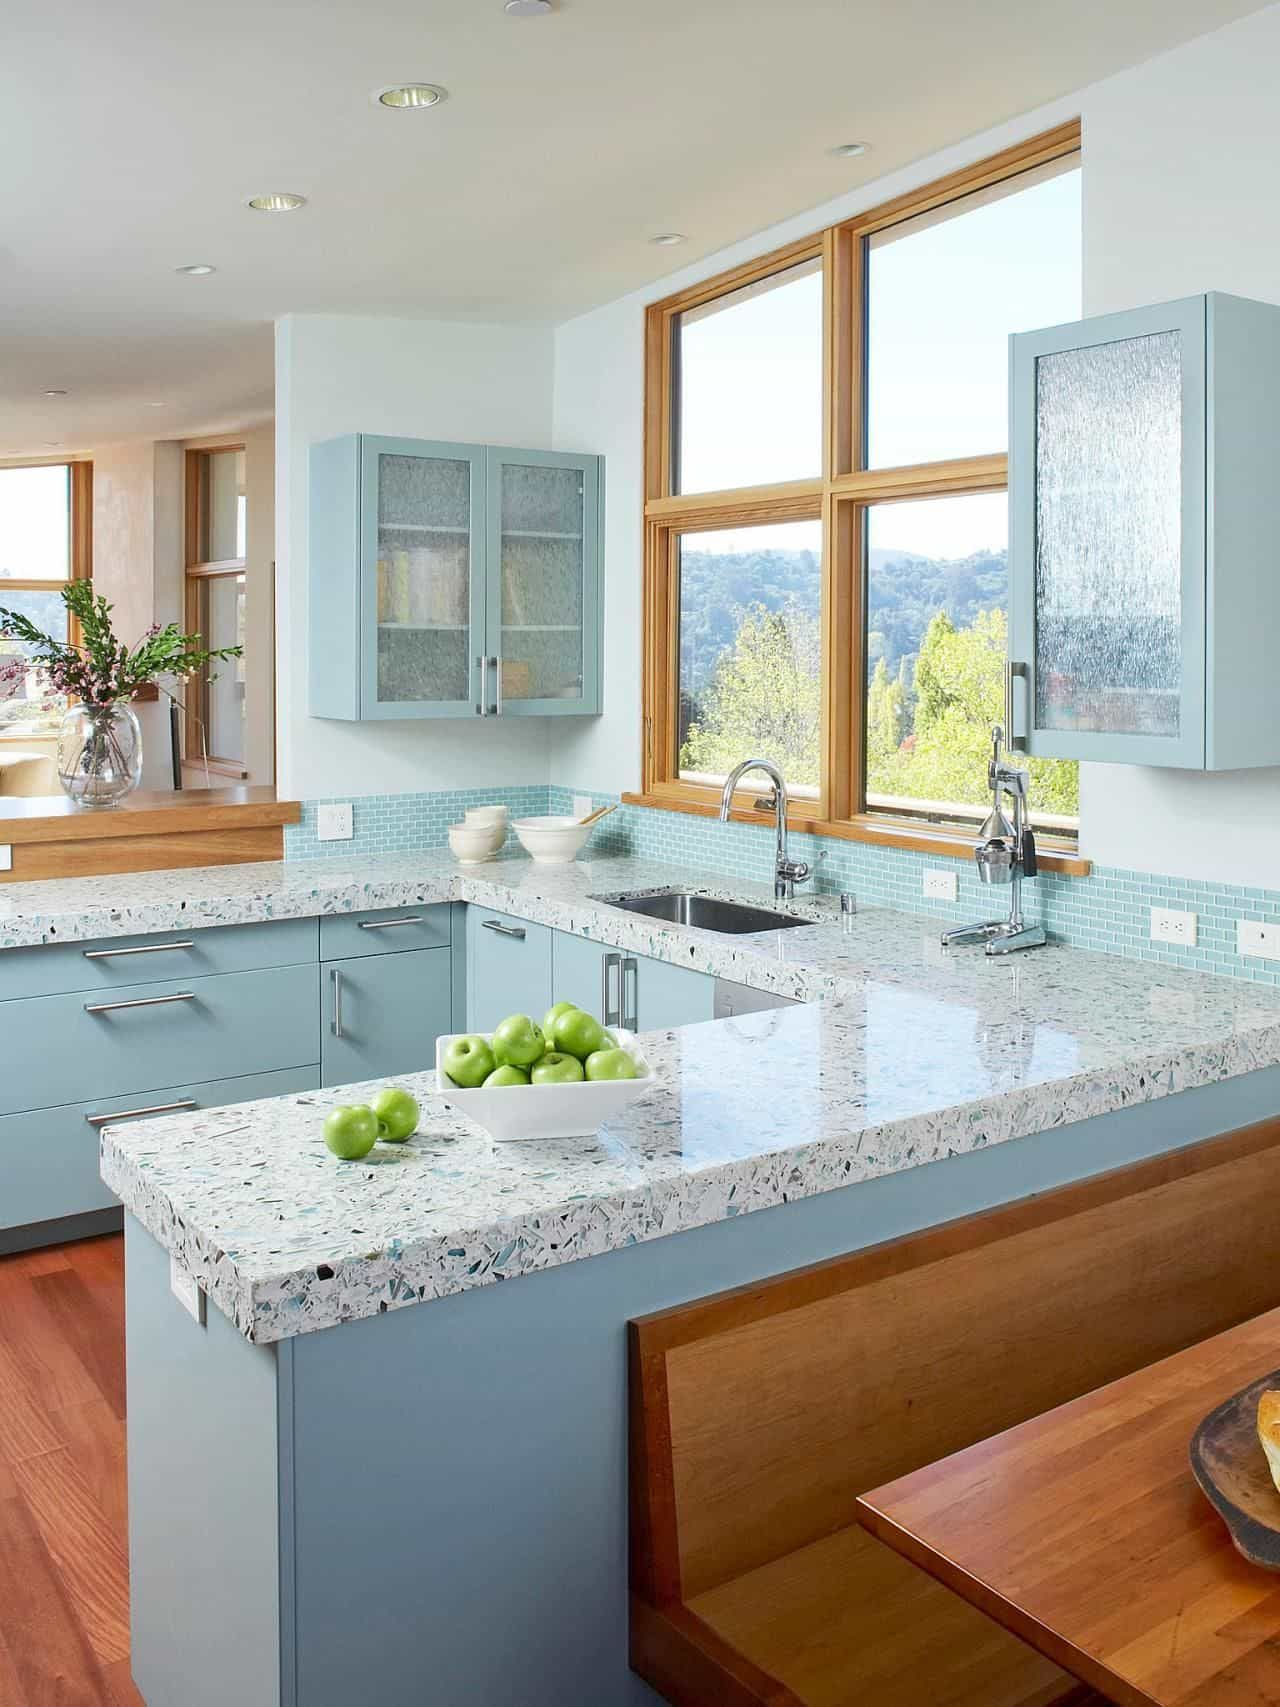 U Shaped Kitchen With Turquoise Cabinets And Granite Countertops